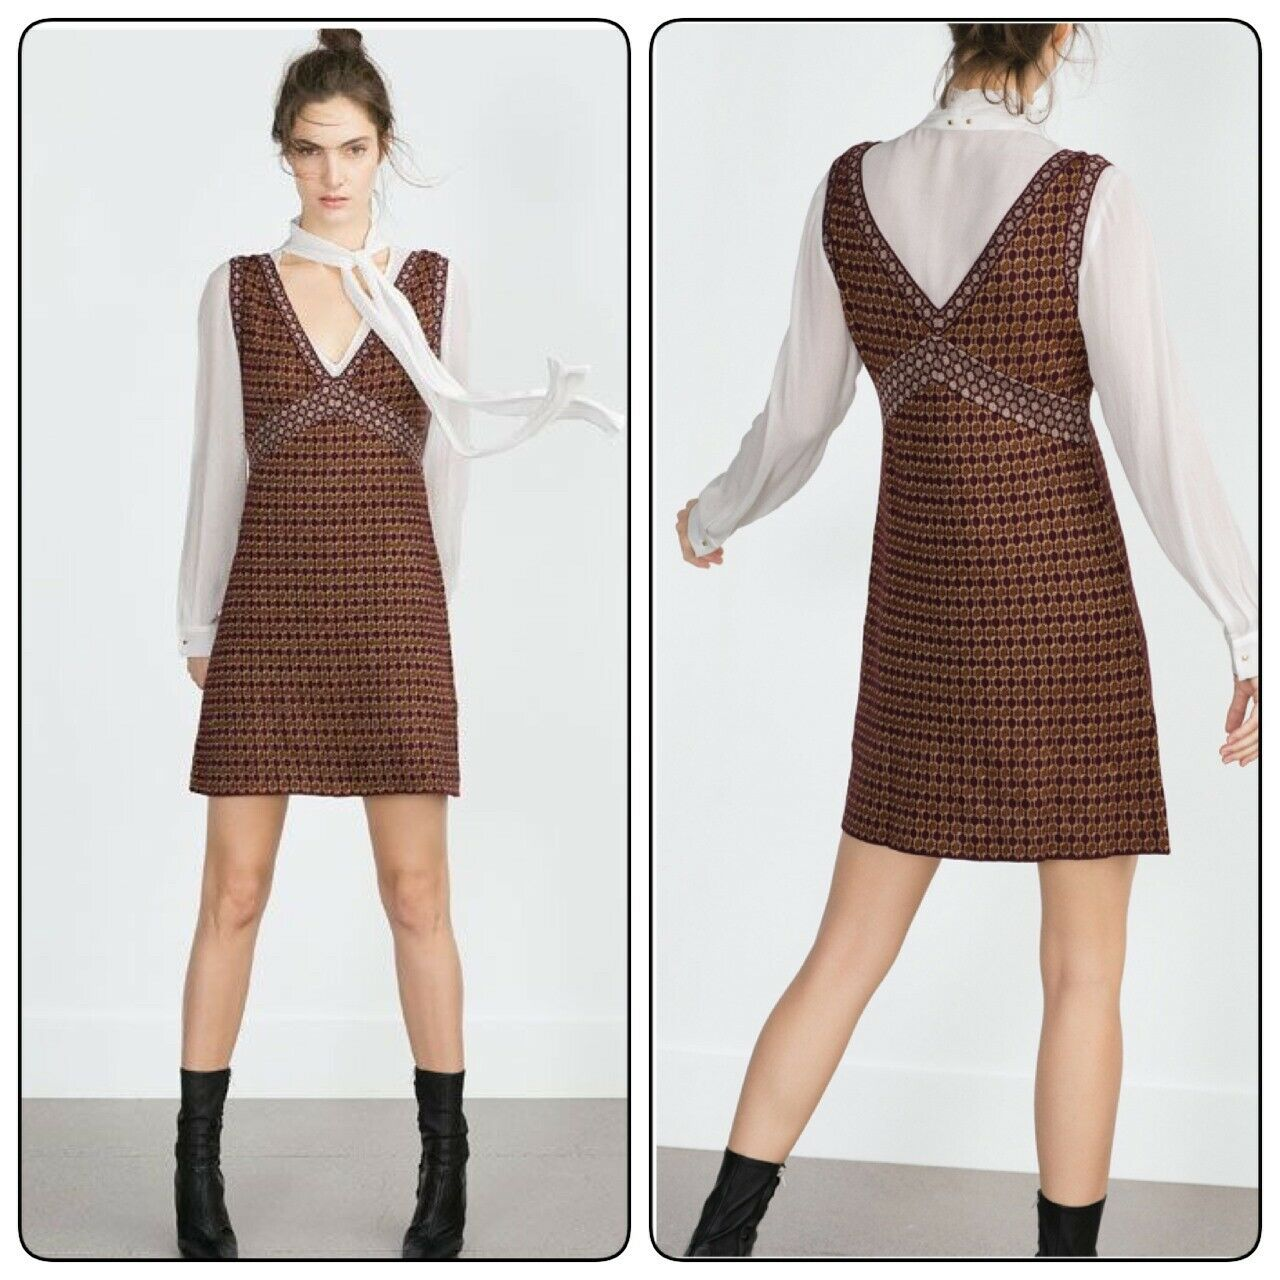 ZARA MICRO JACQUARD KNIT DRESS braun SLEEVELESS RETRO TILE 70s SHIFT PRINT S M